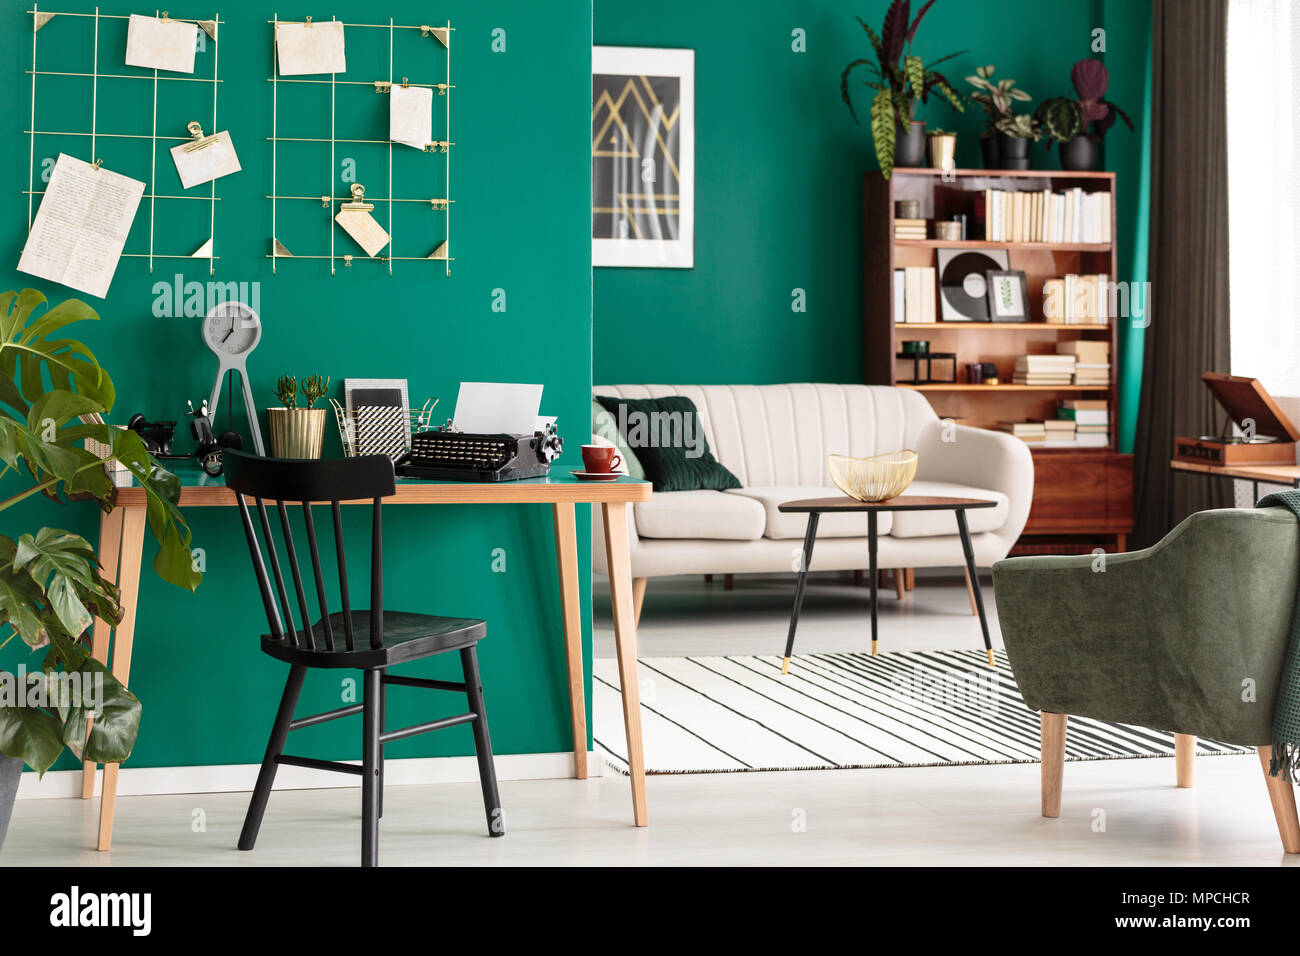 Black chair at wooden desk in green open space interior with armchair and couch - Stock Image